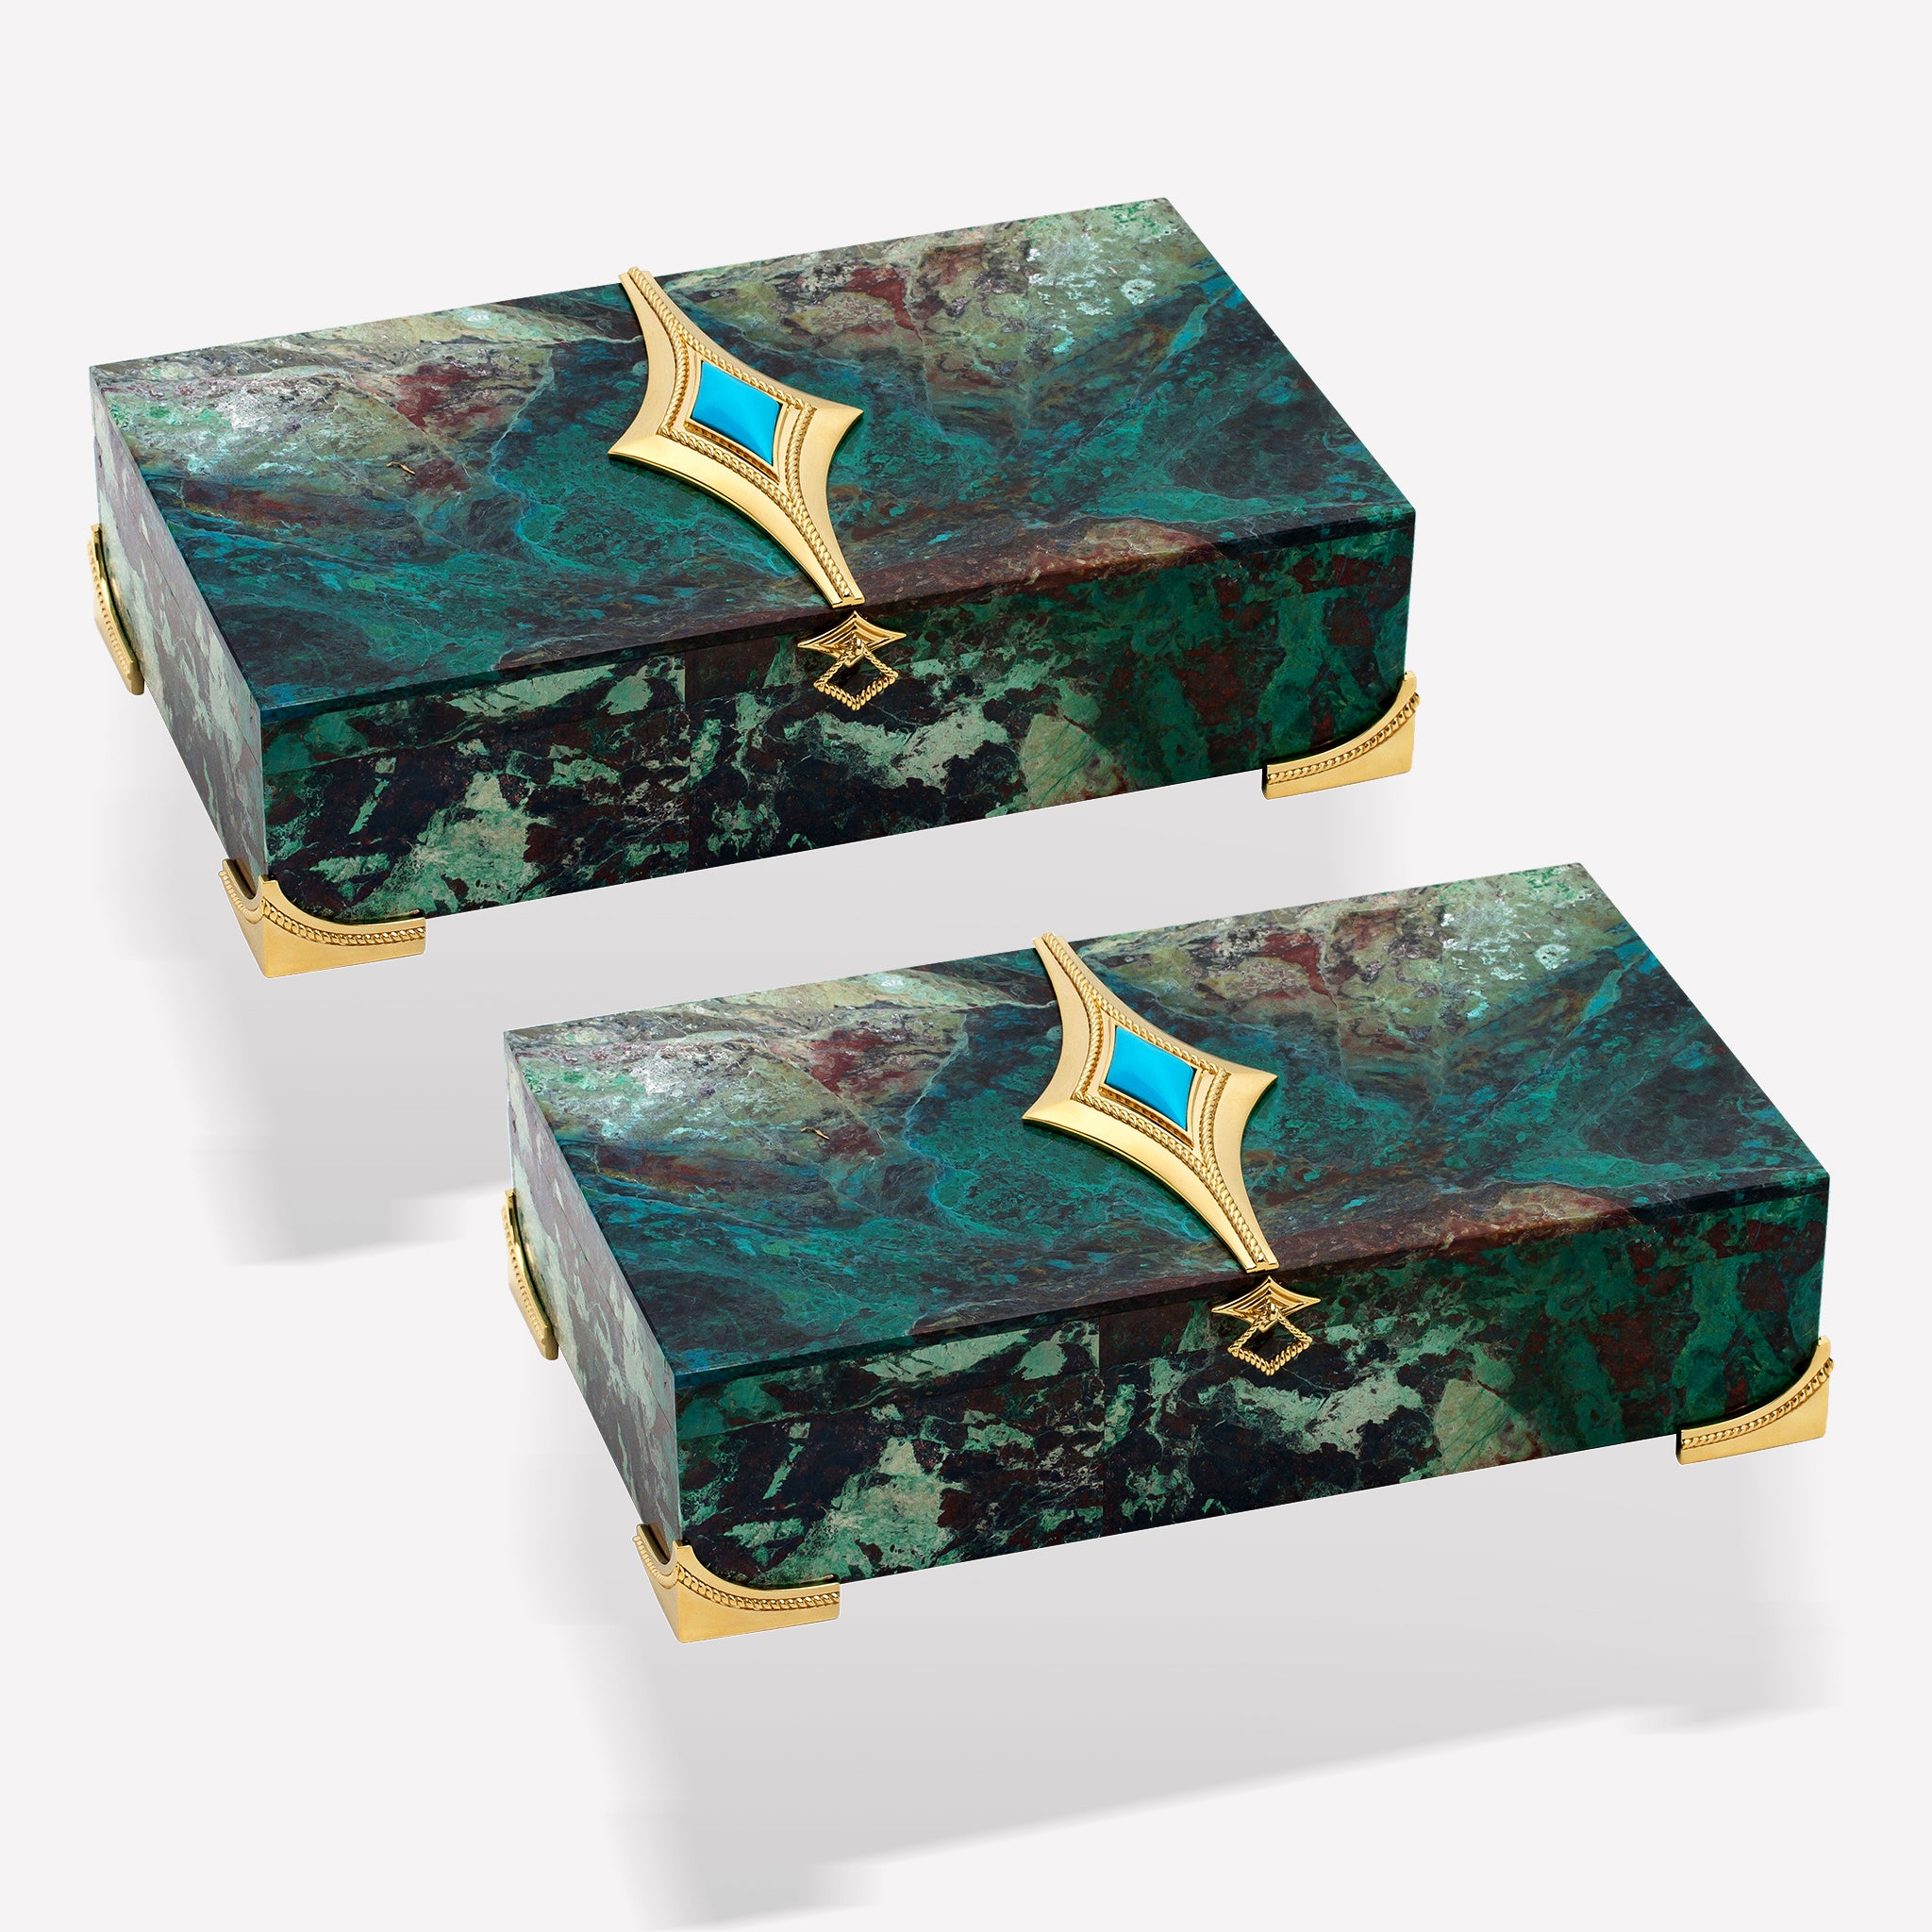 marinab.com, Twins Set Chrysocolla boxes